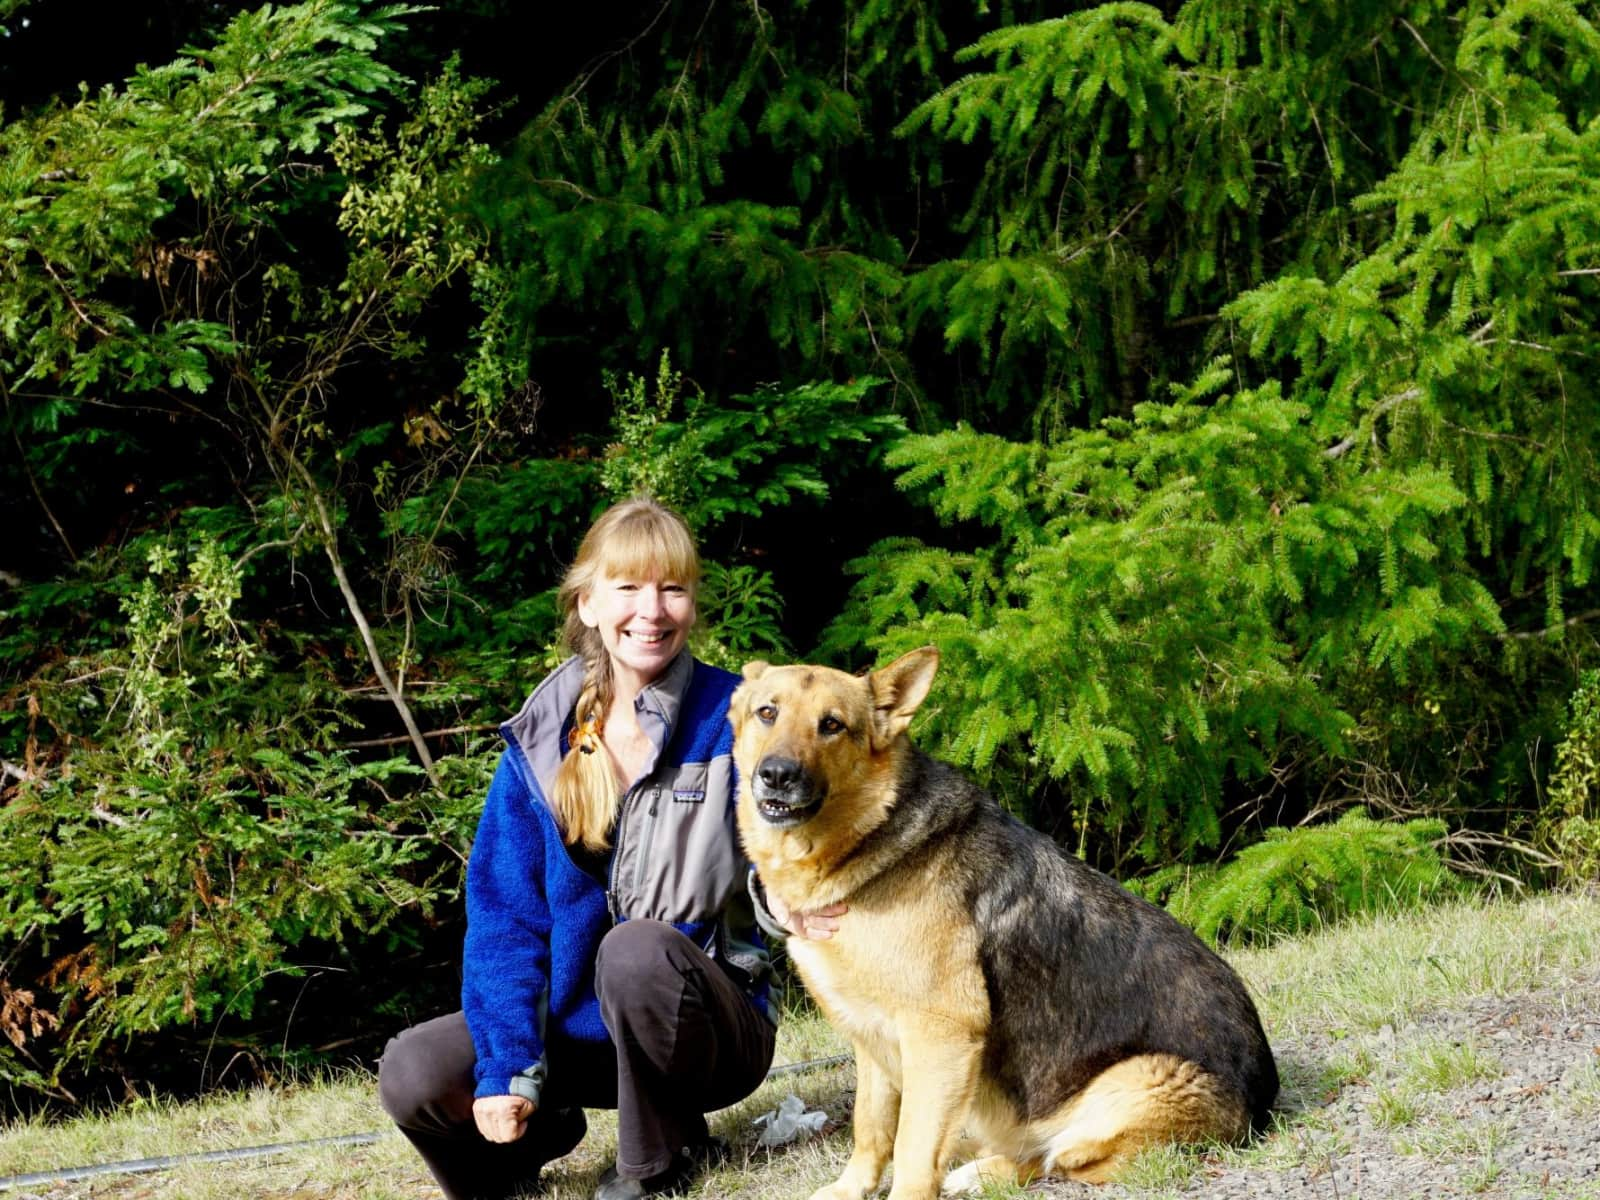 Shelley from Mendocino, California, United States